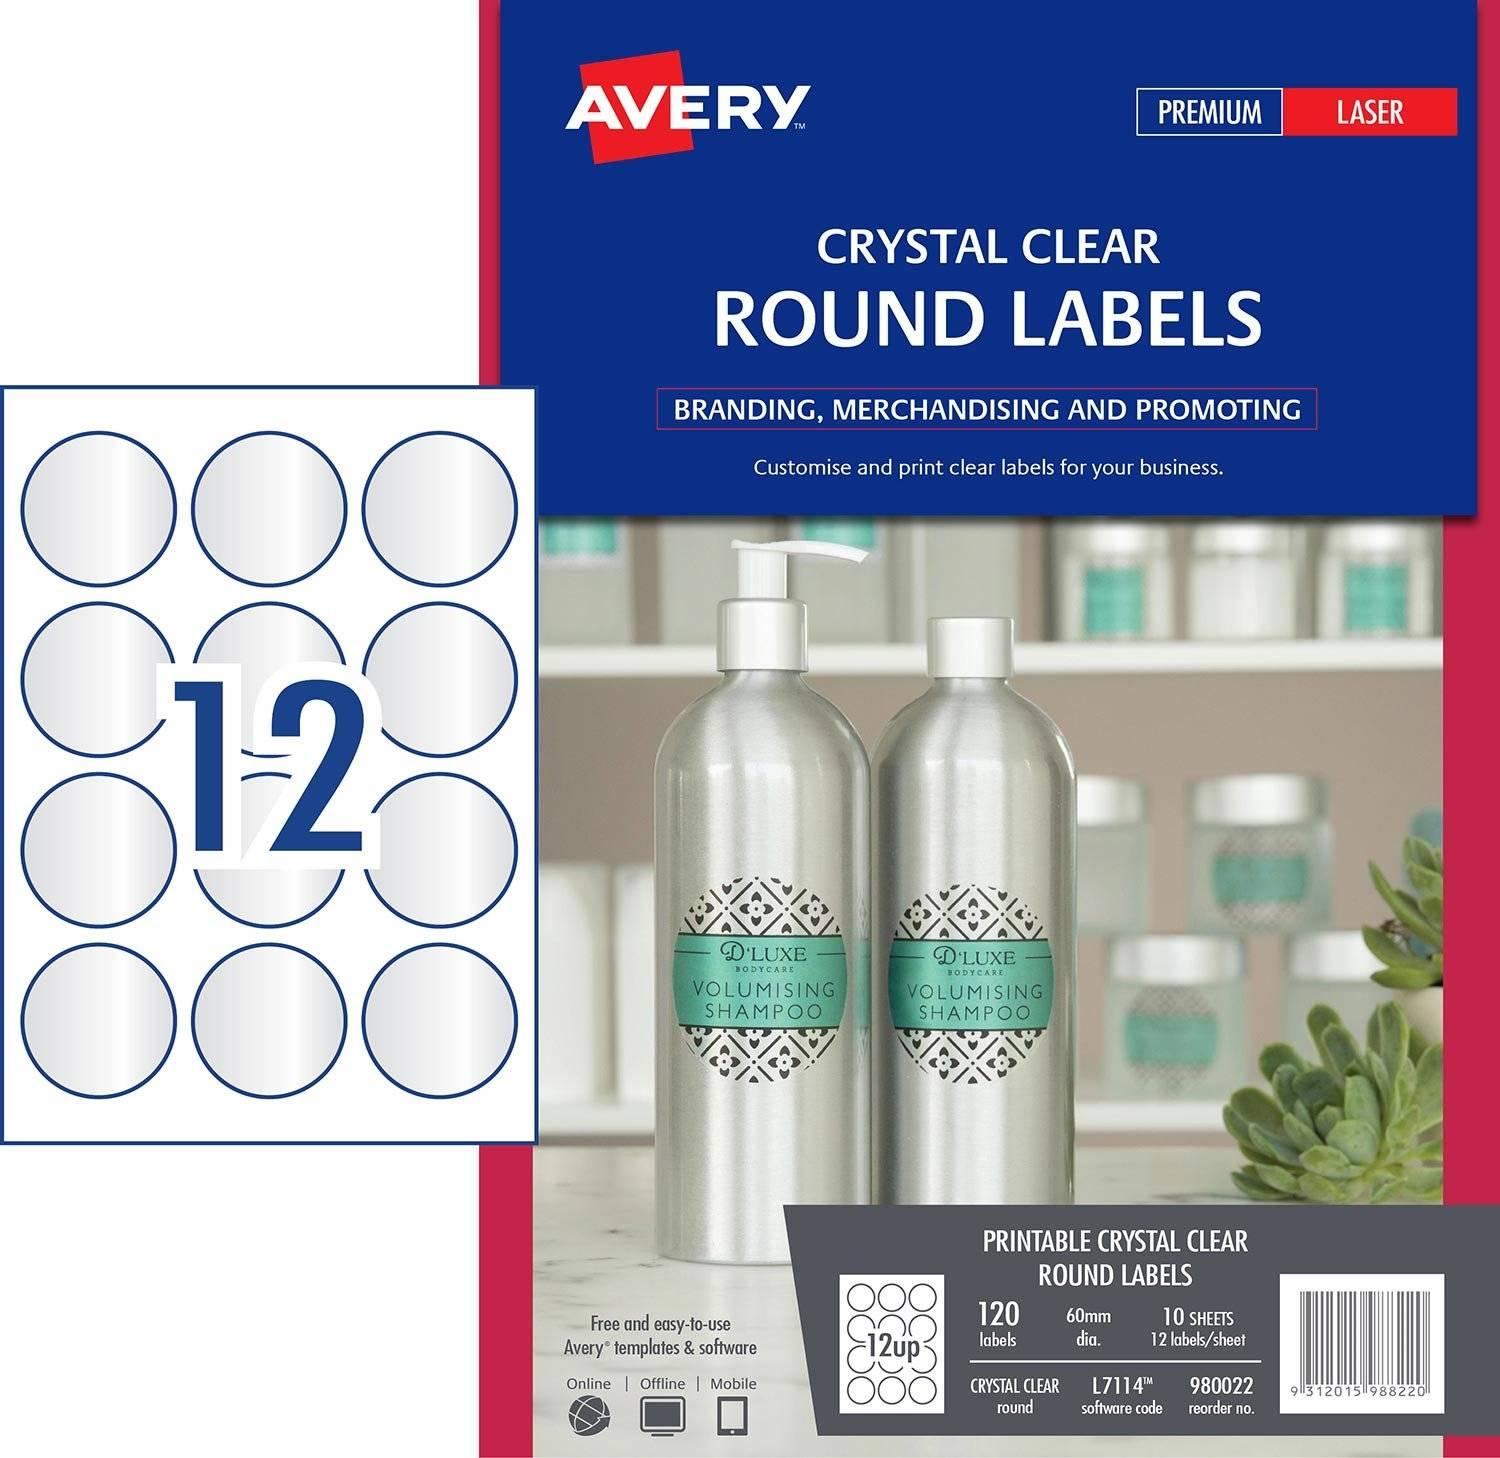 Avery Round Labels 60mm Template